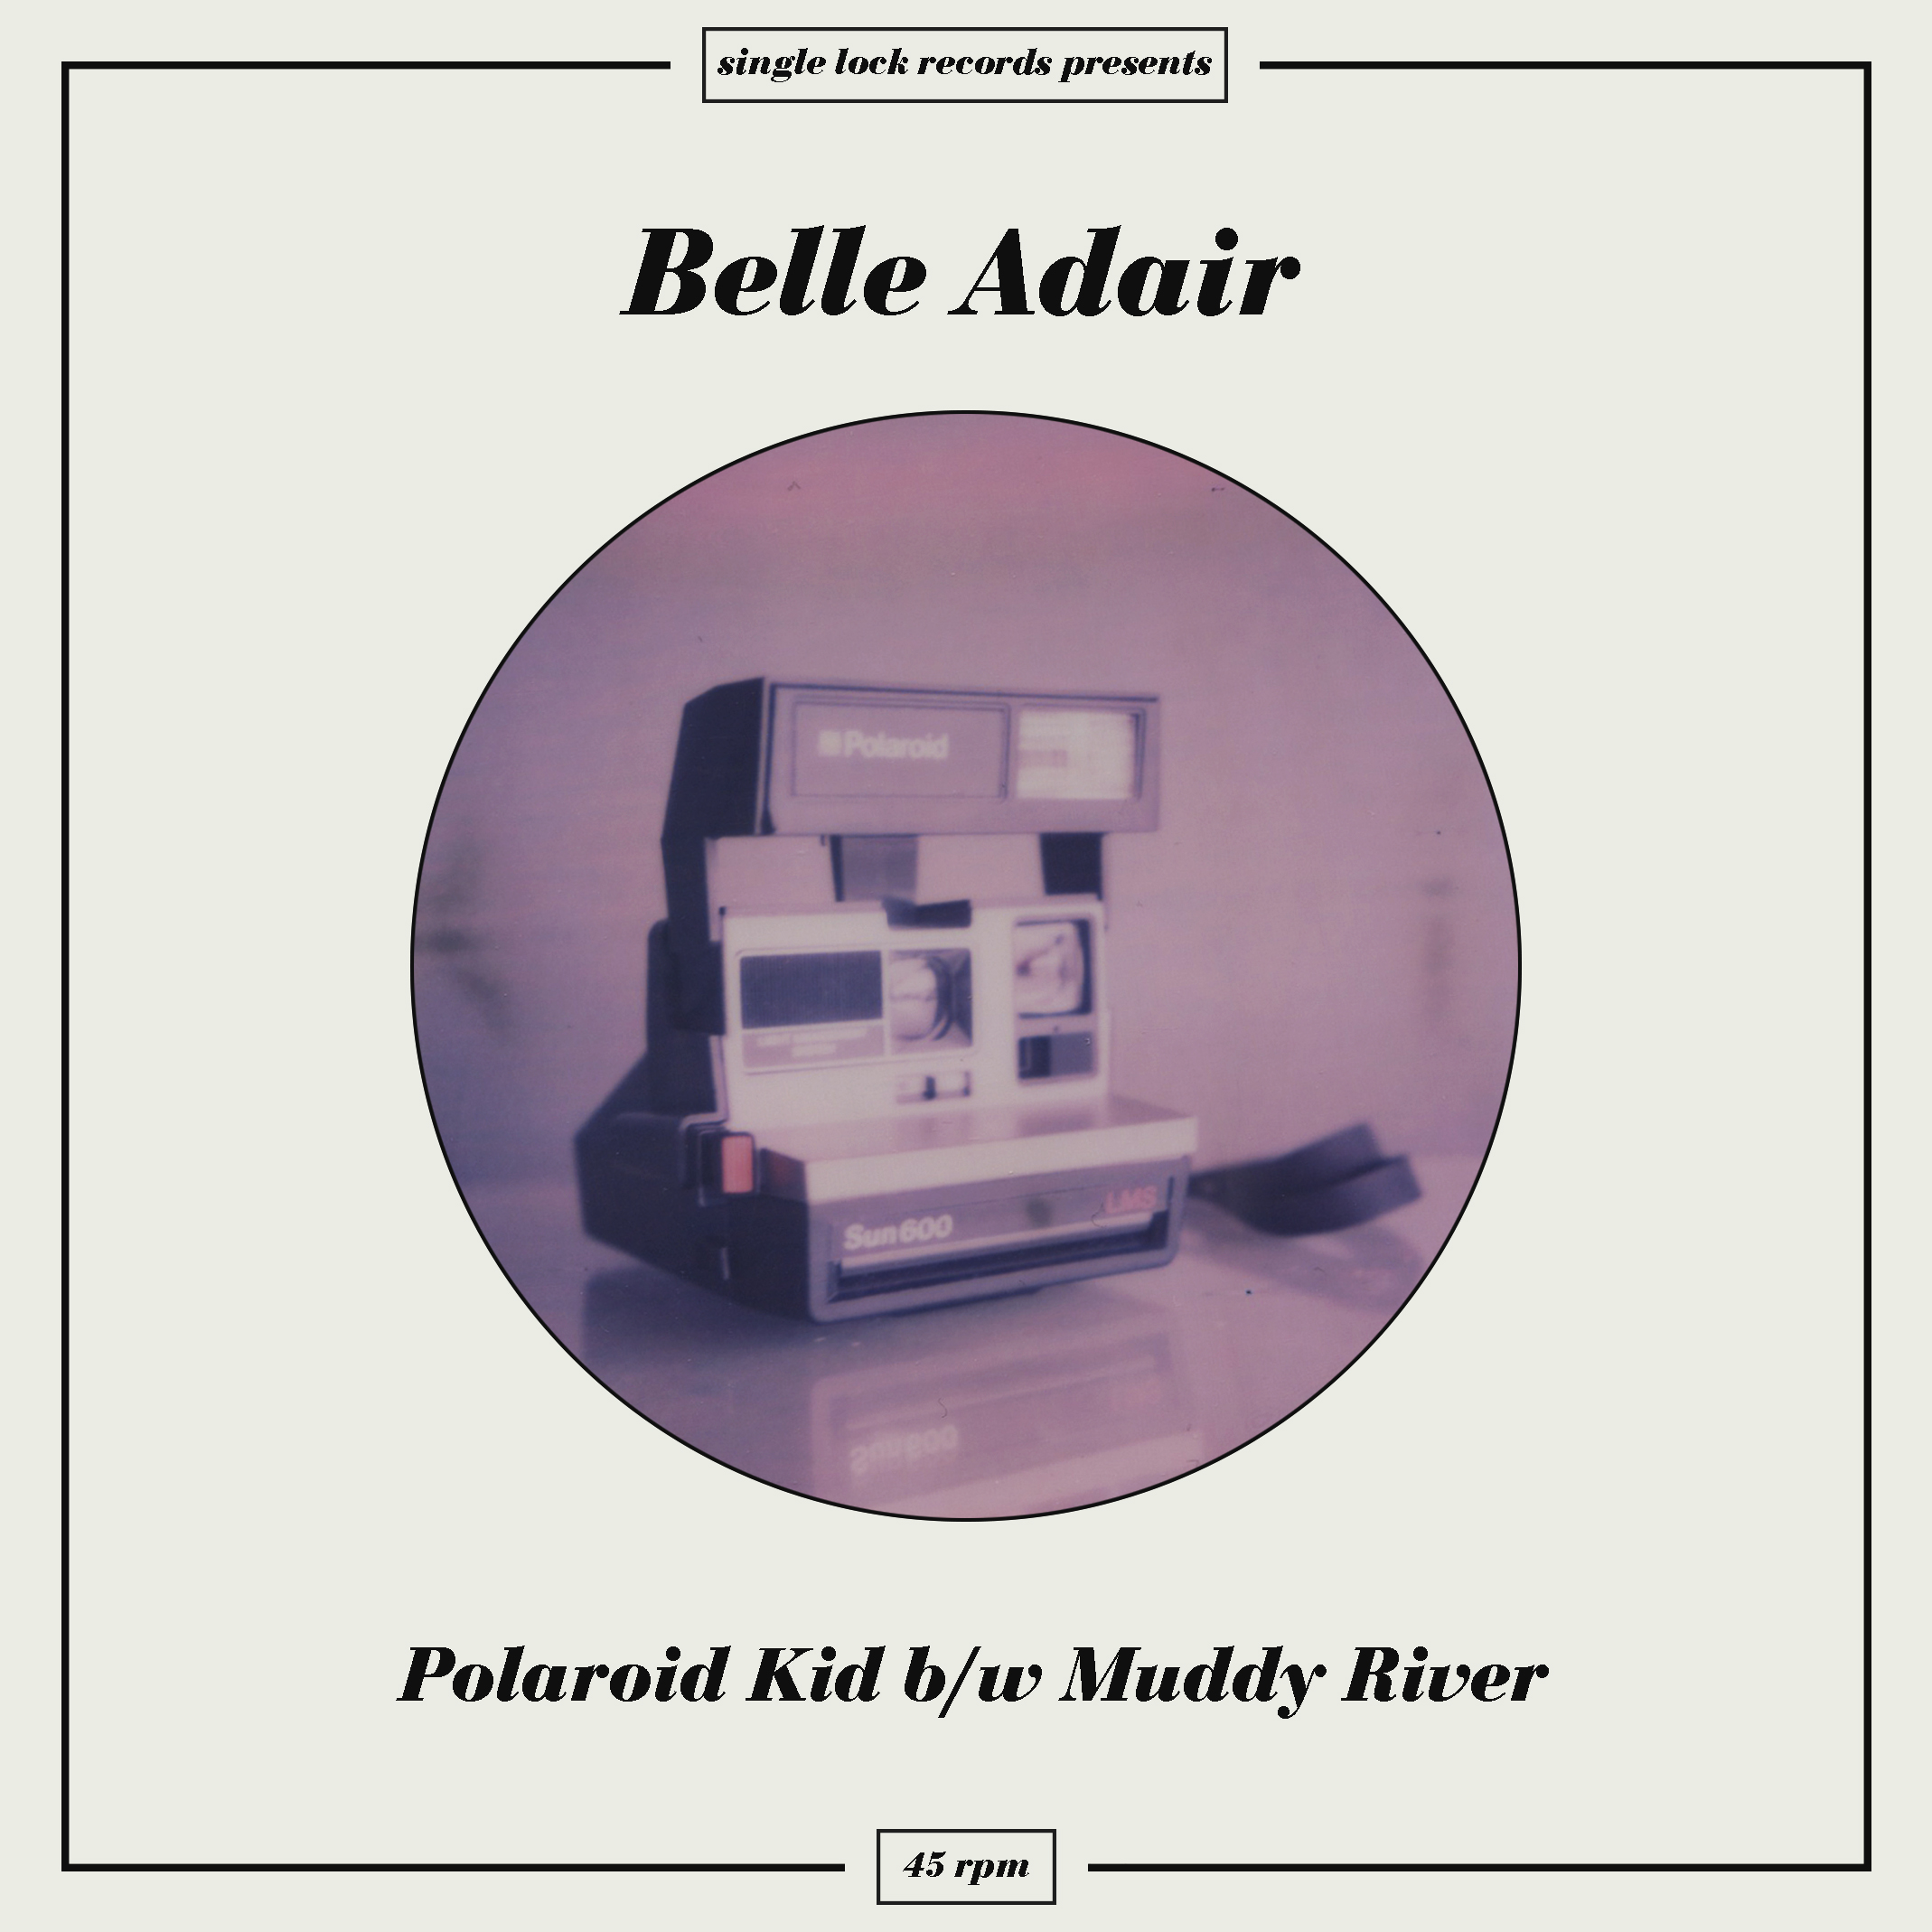 SL008:  Belle Adair-  Polaroid Kid b/w Muddy River